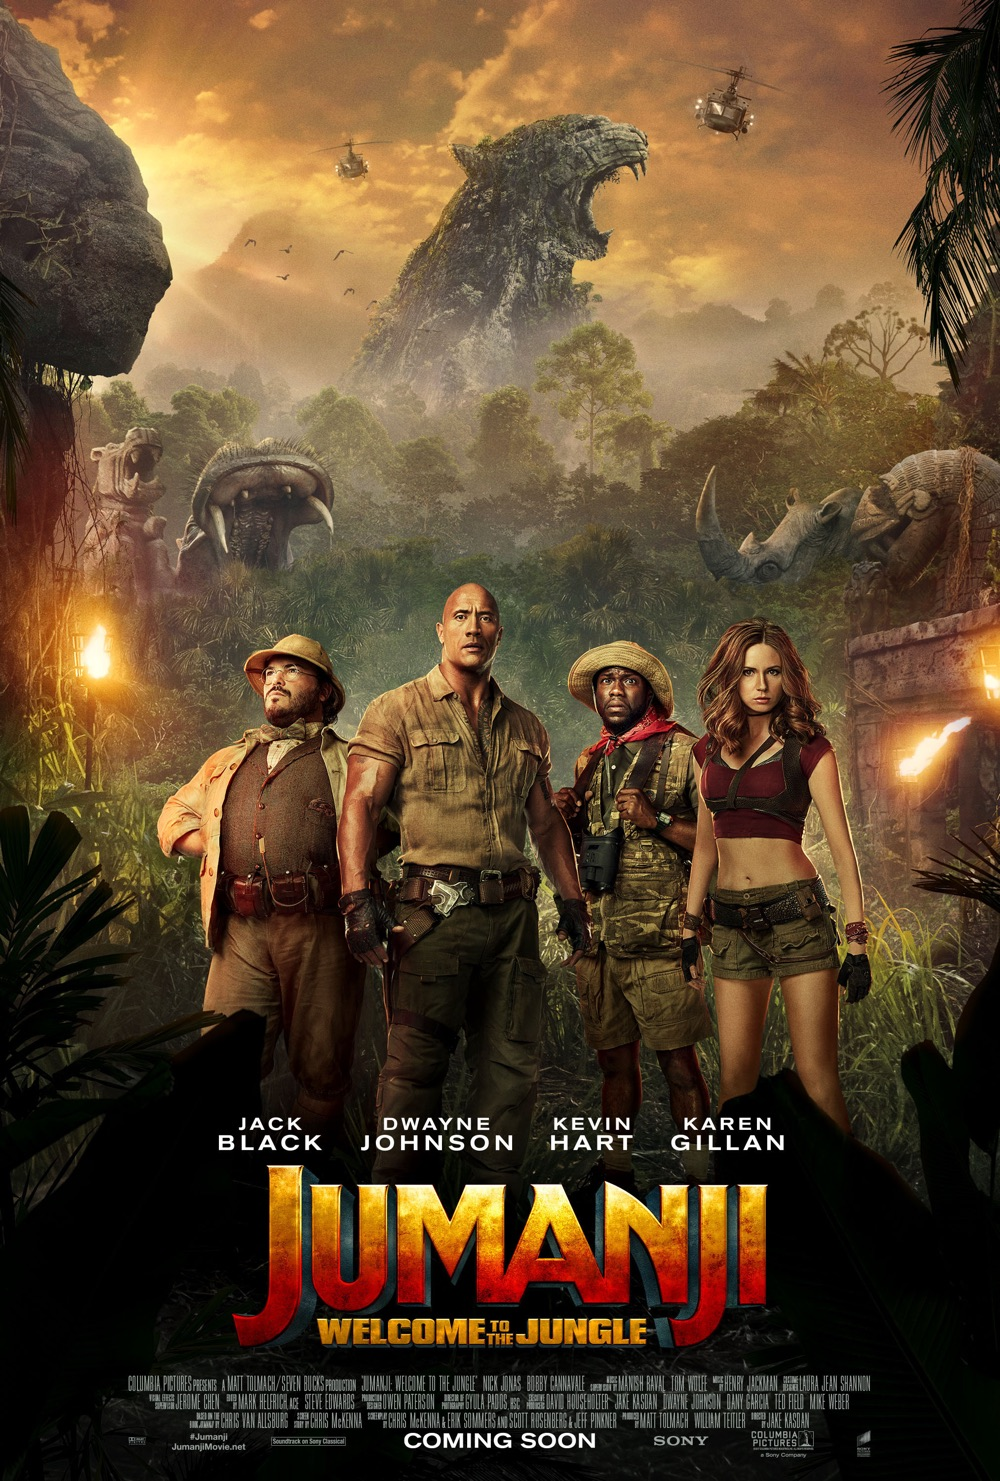 Jumanji: Welcome to the Jungle poster artwork